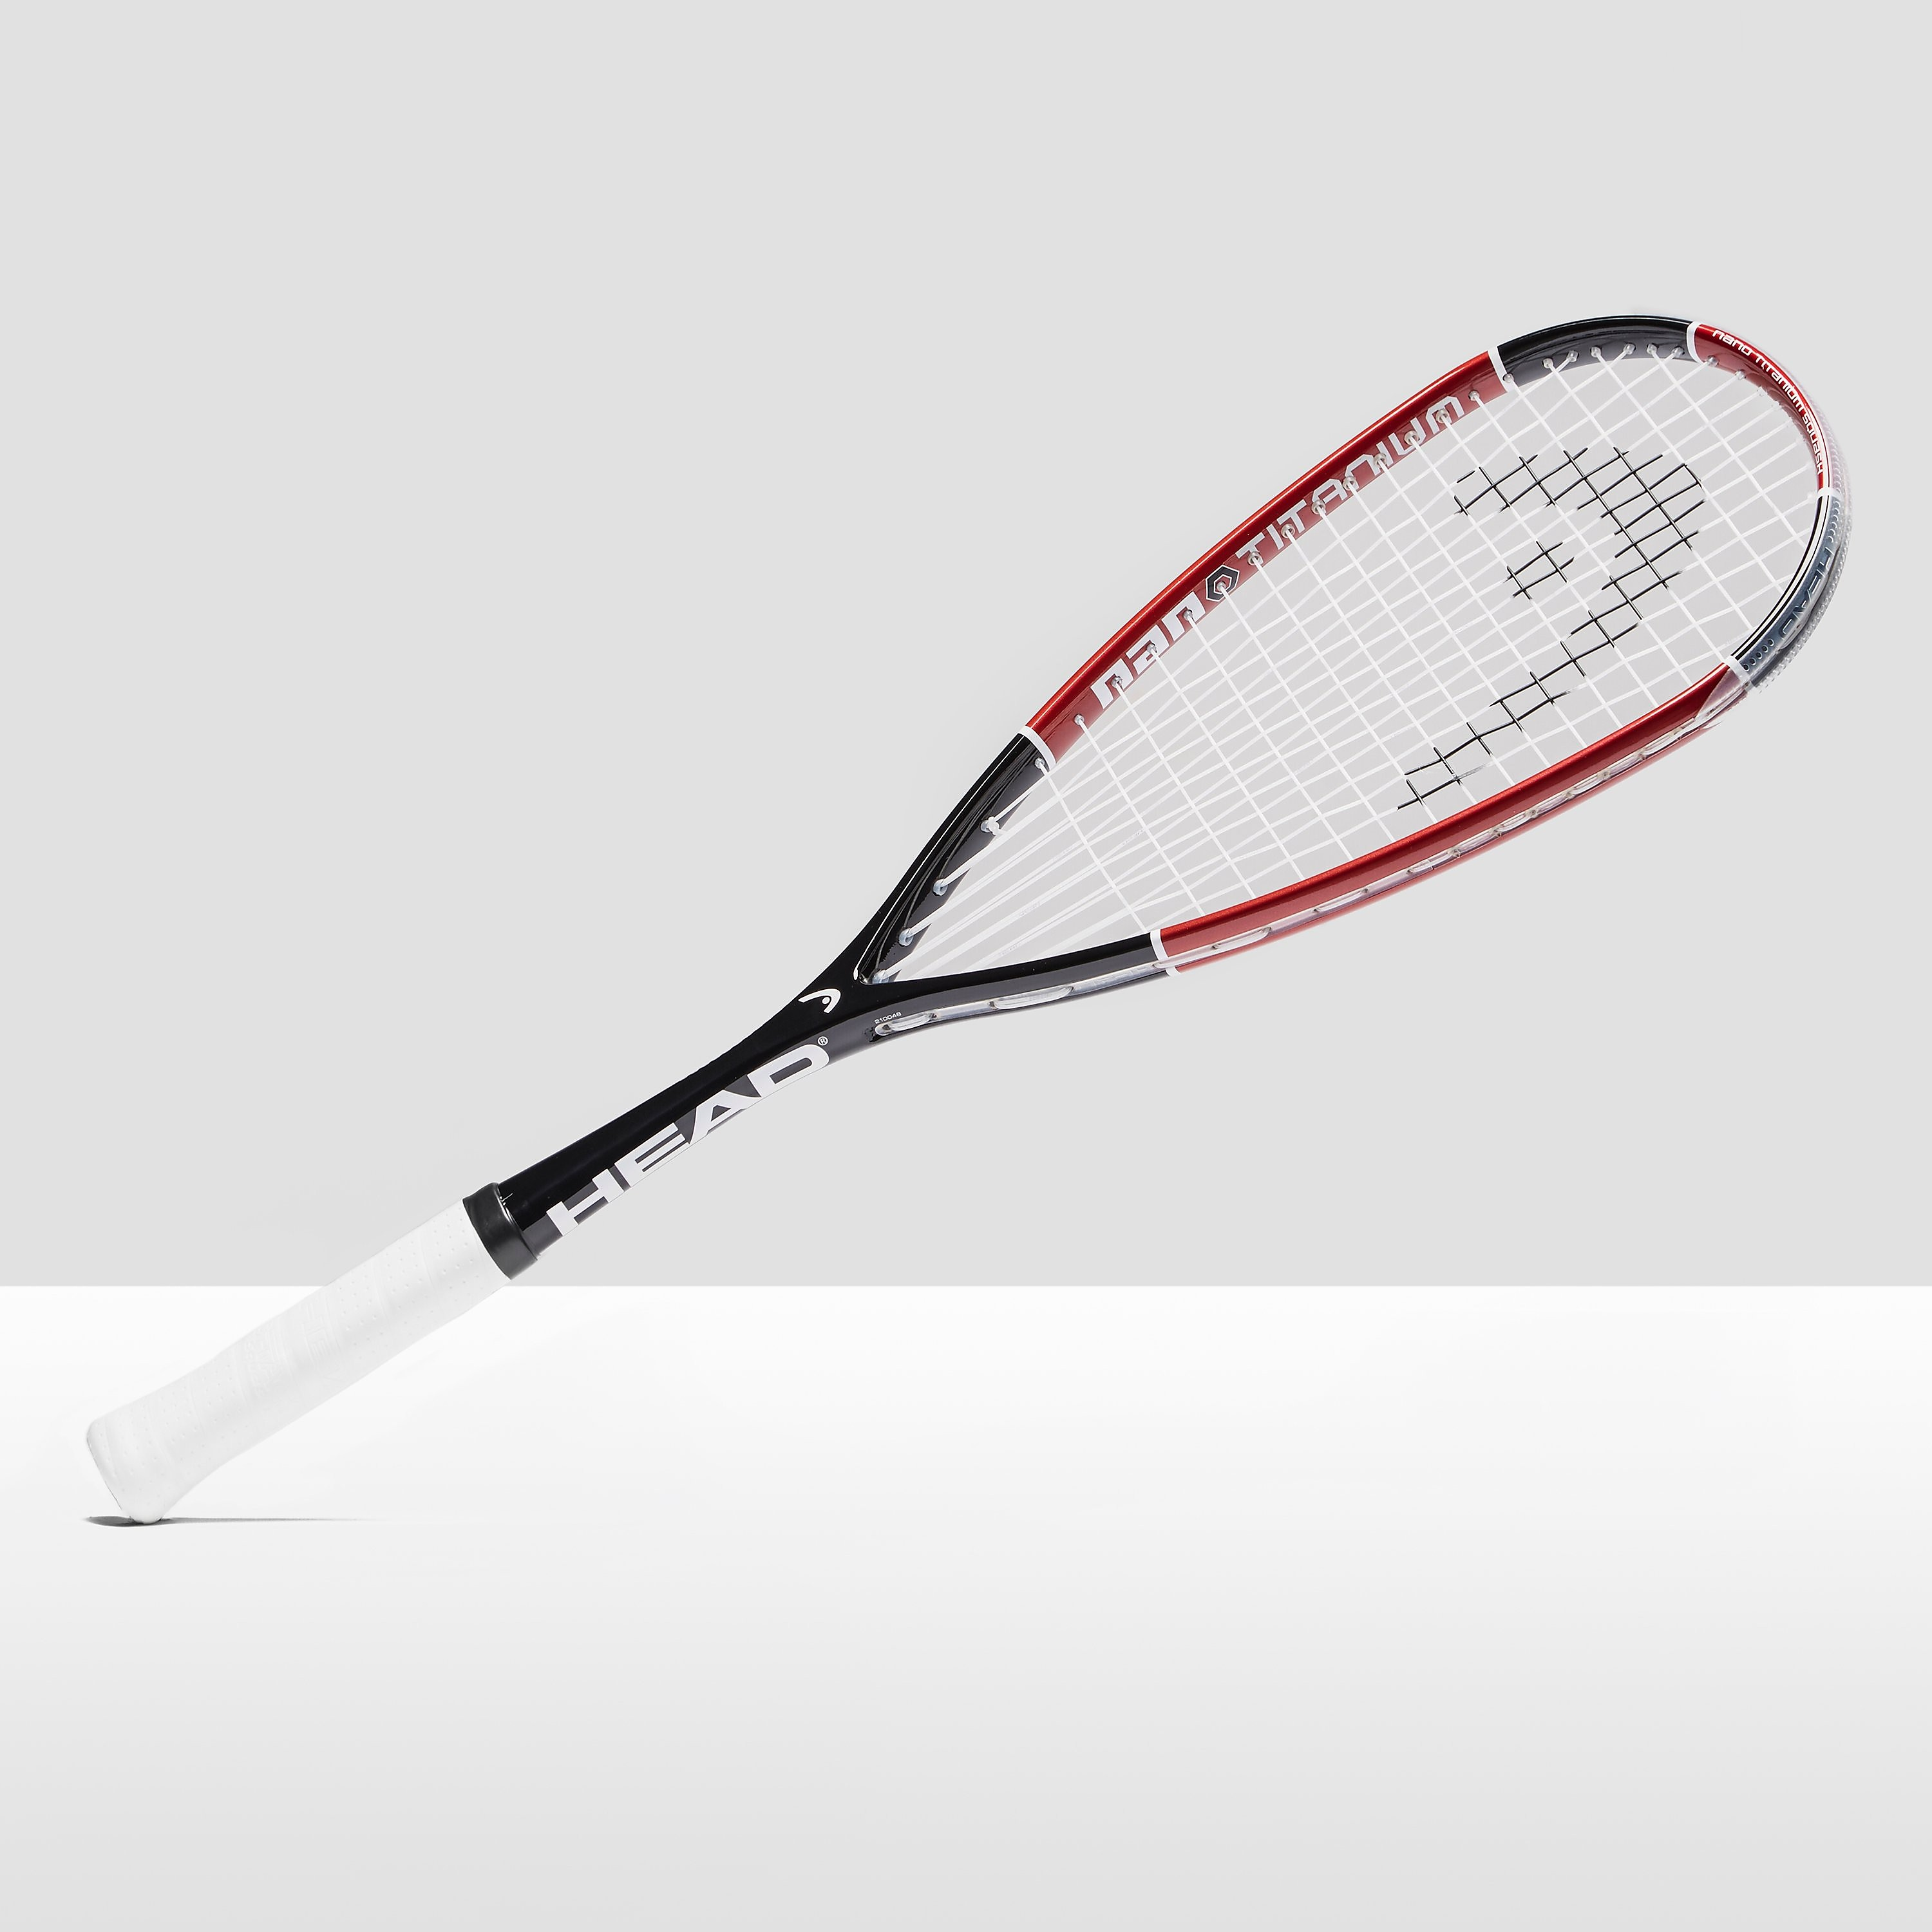 Head Nano Ti110 Squash Racket